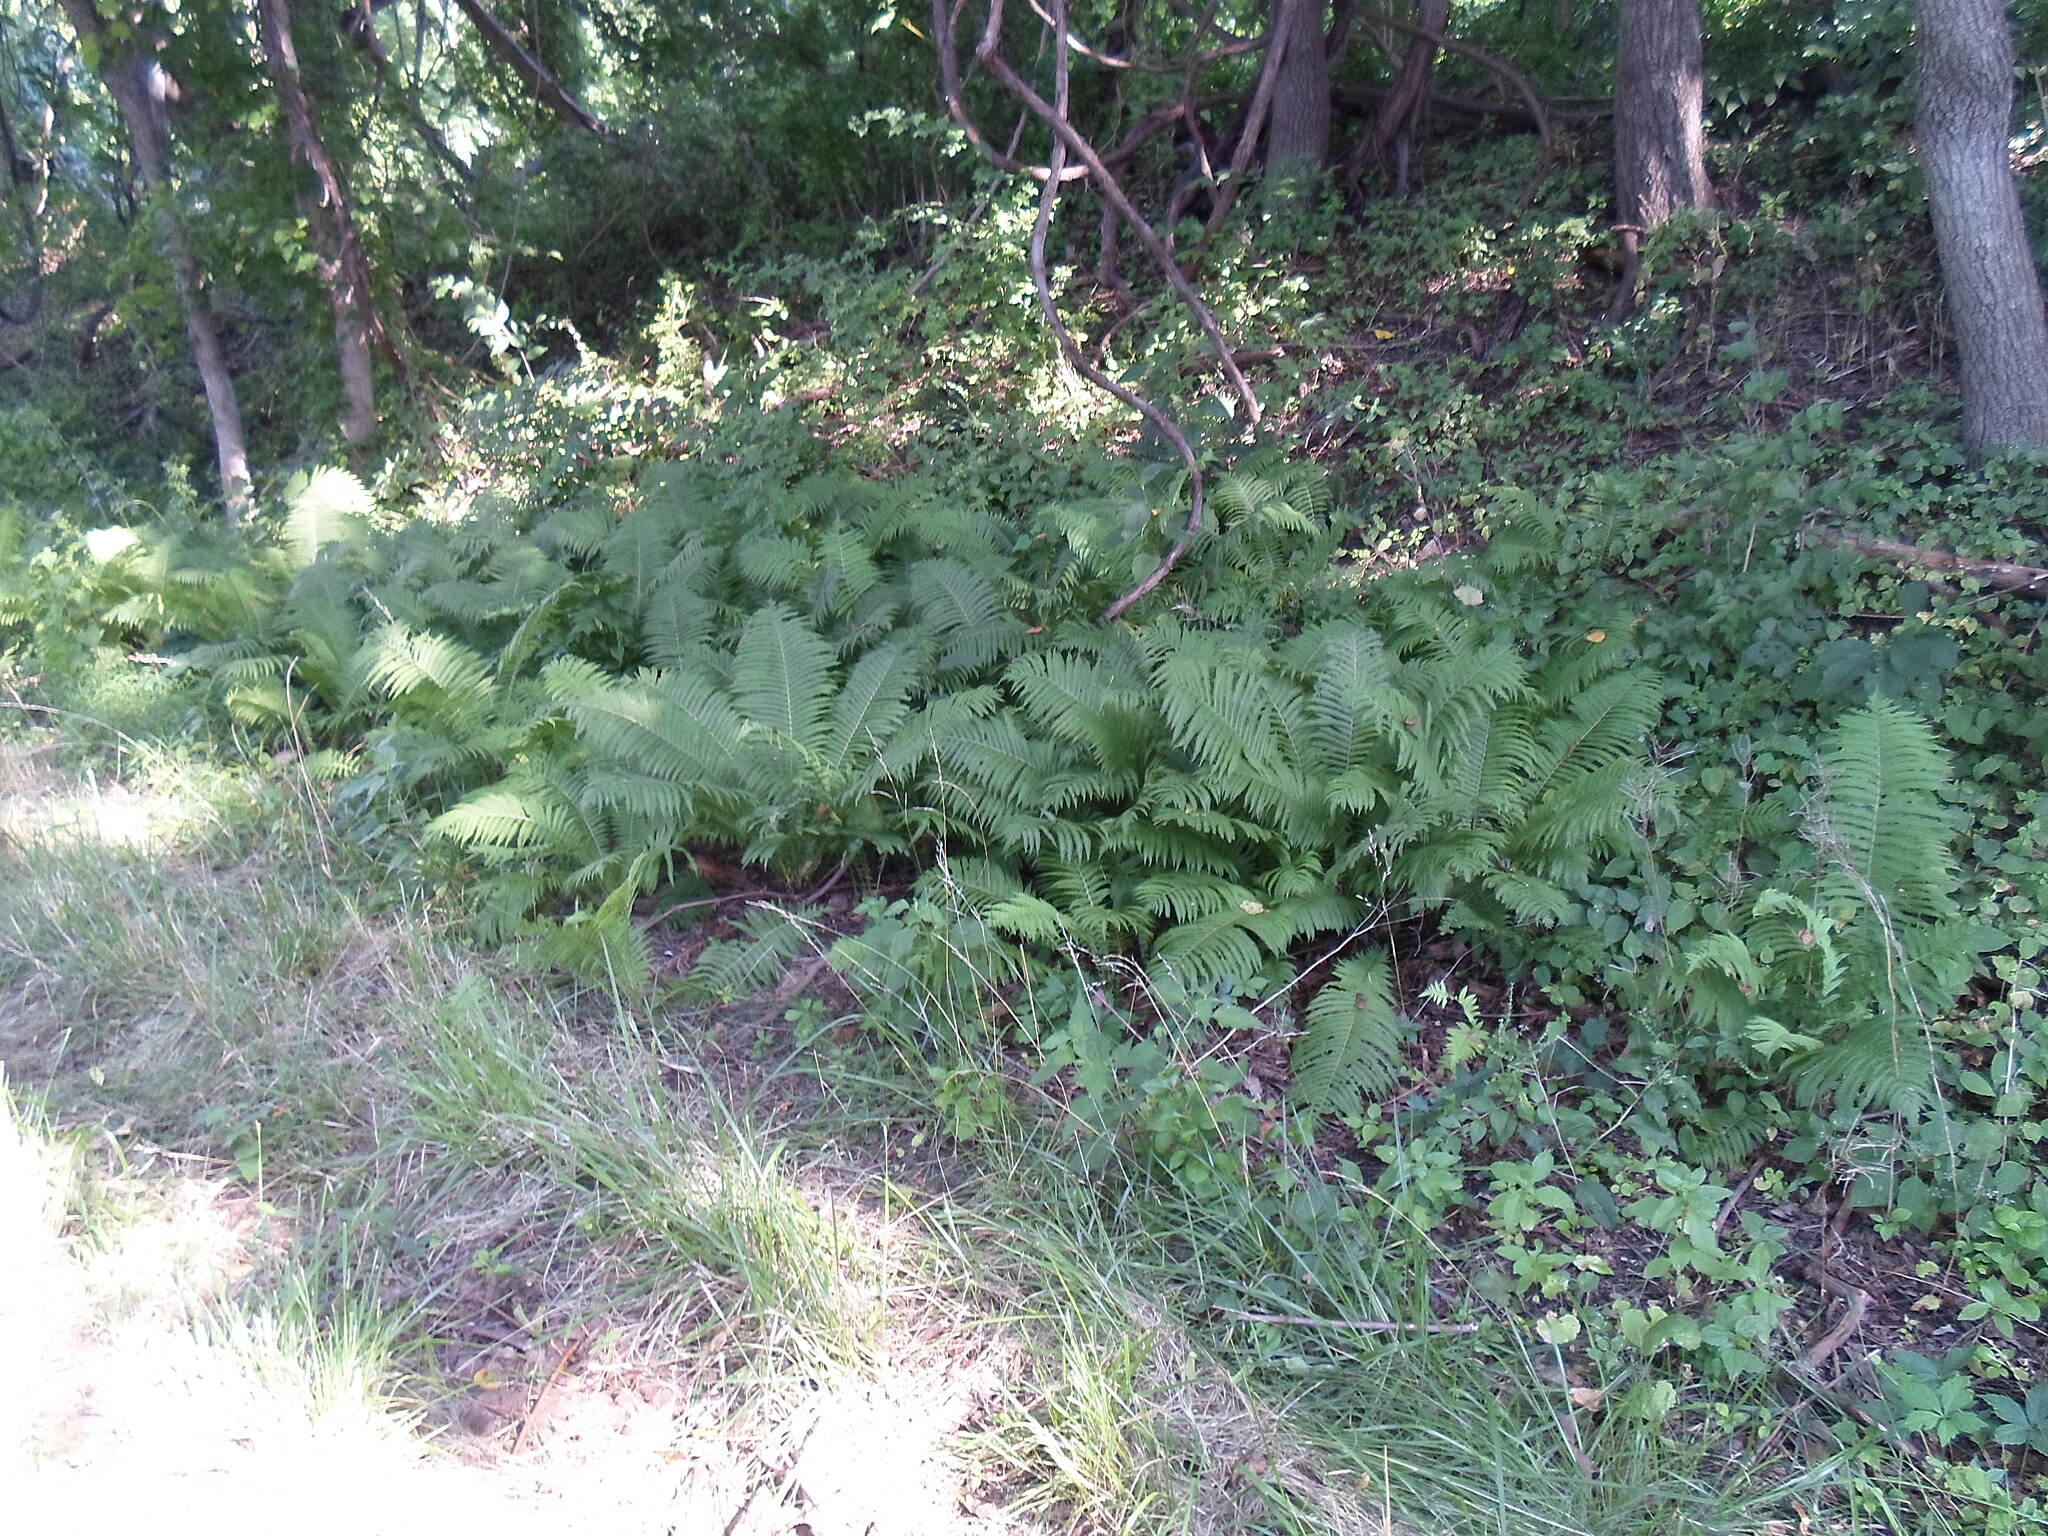 Chester Valley Trail Chester Valley Trail These ferns were part of the greenery that surrounds the trail in the warm months of the year. Taken July 2015.